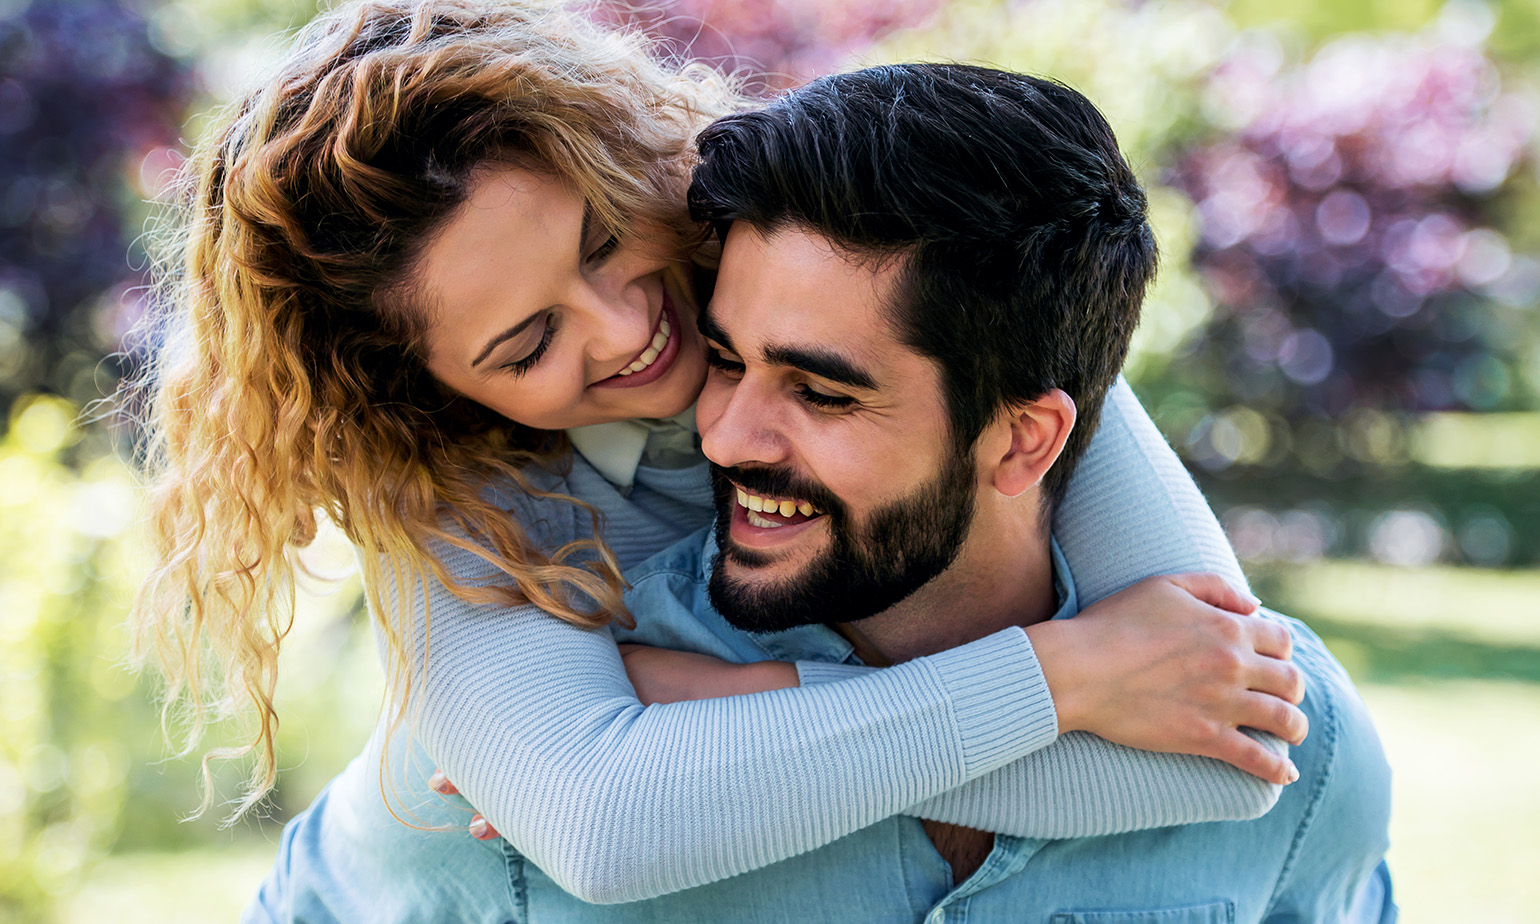 Building a Healthy and Happy Relationship with Your Partner